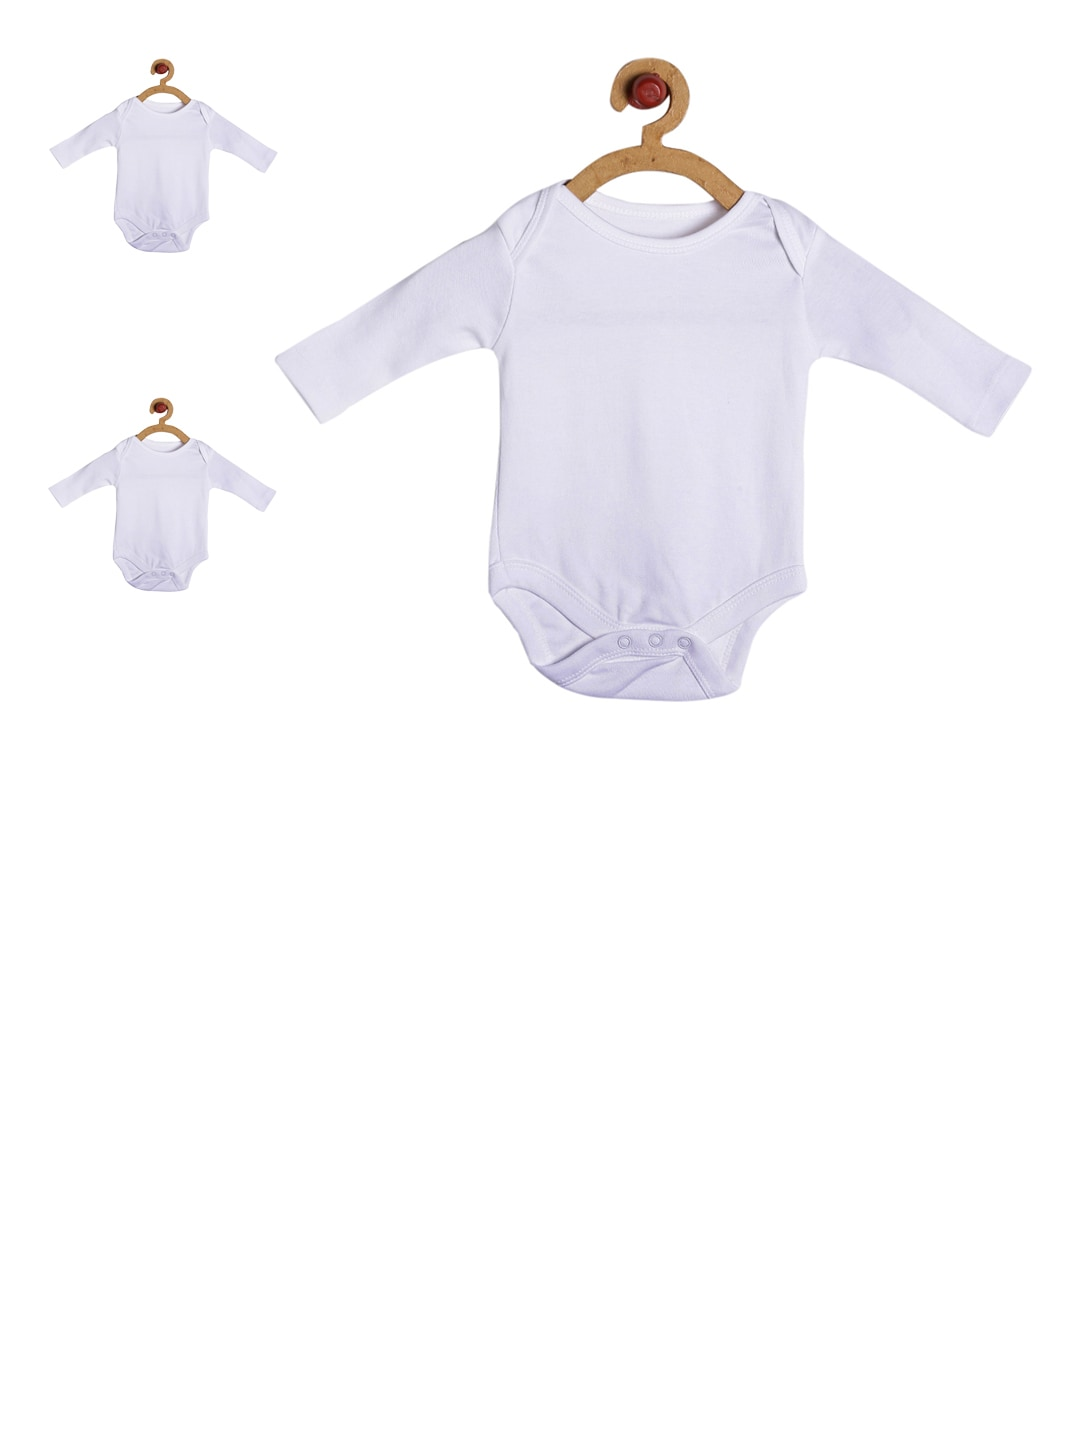 GKIDZ Infants Pack of 3 Off-white Cotton Bodysuits image